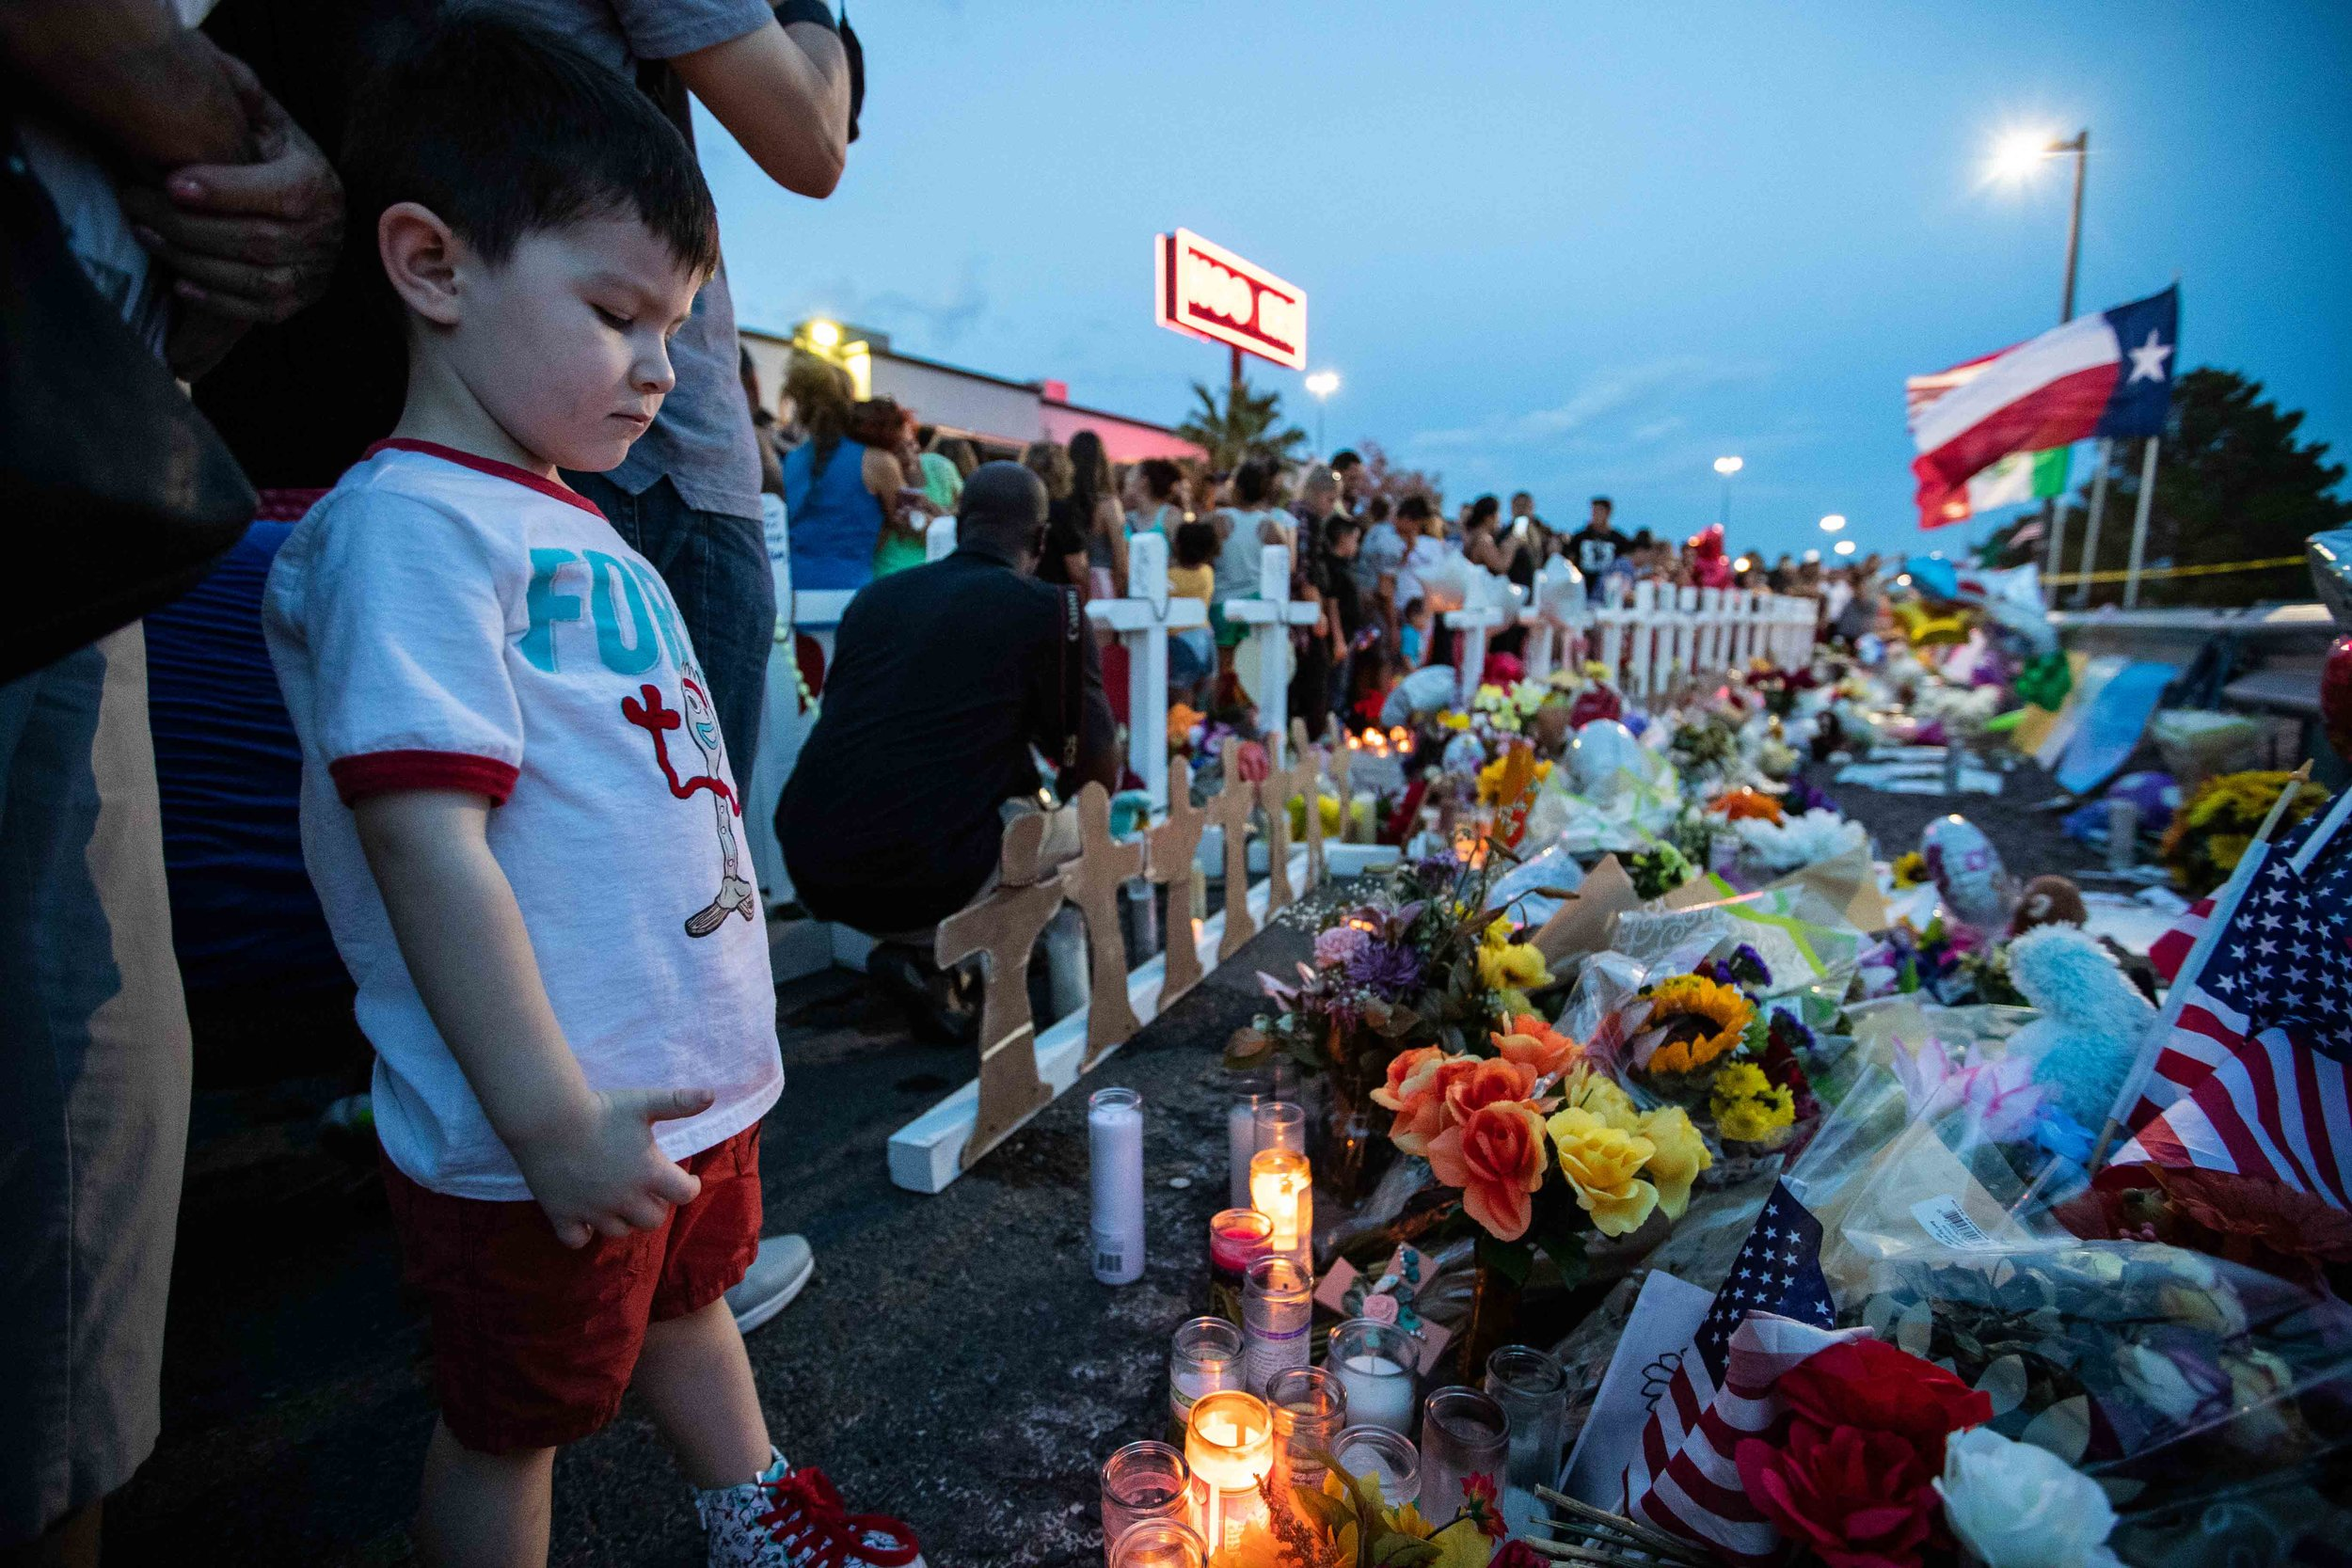 Roy Cedillo, 4, looks at some of the candles, flowers and flags that were placed on the scene to honor the victims of a mass shooting occurred in Walmart las Saturday morning in El Paso on Monday, August 5, 2019.